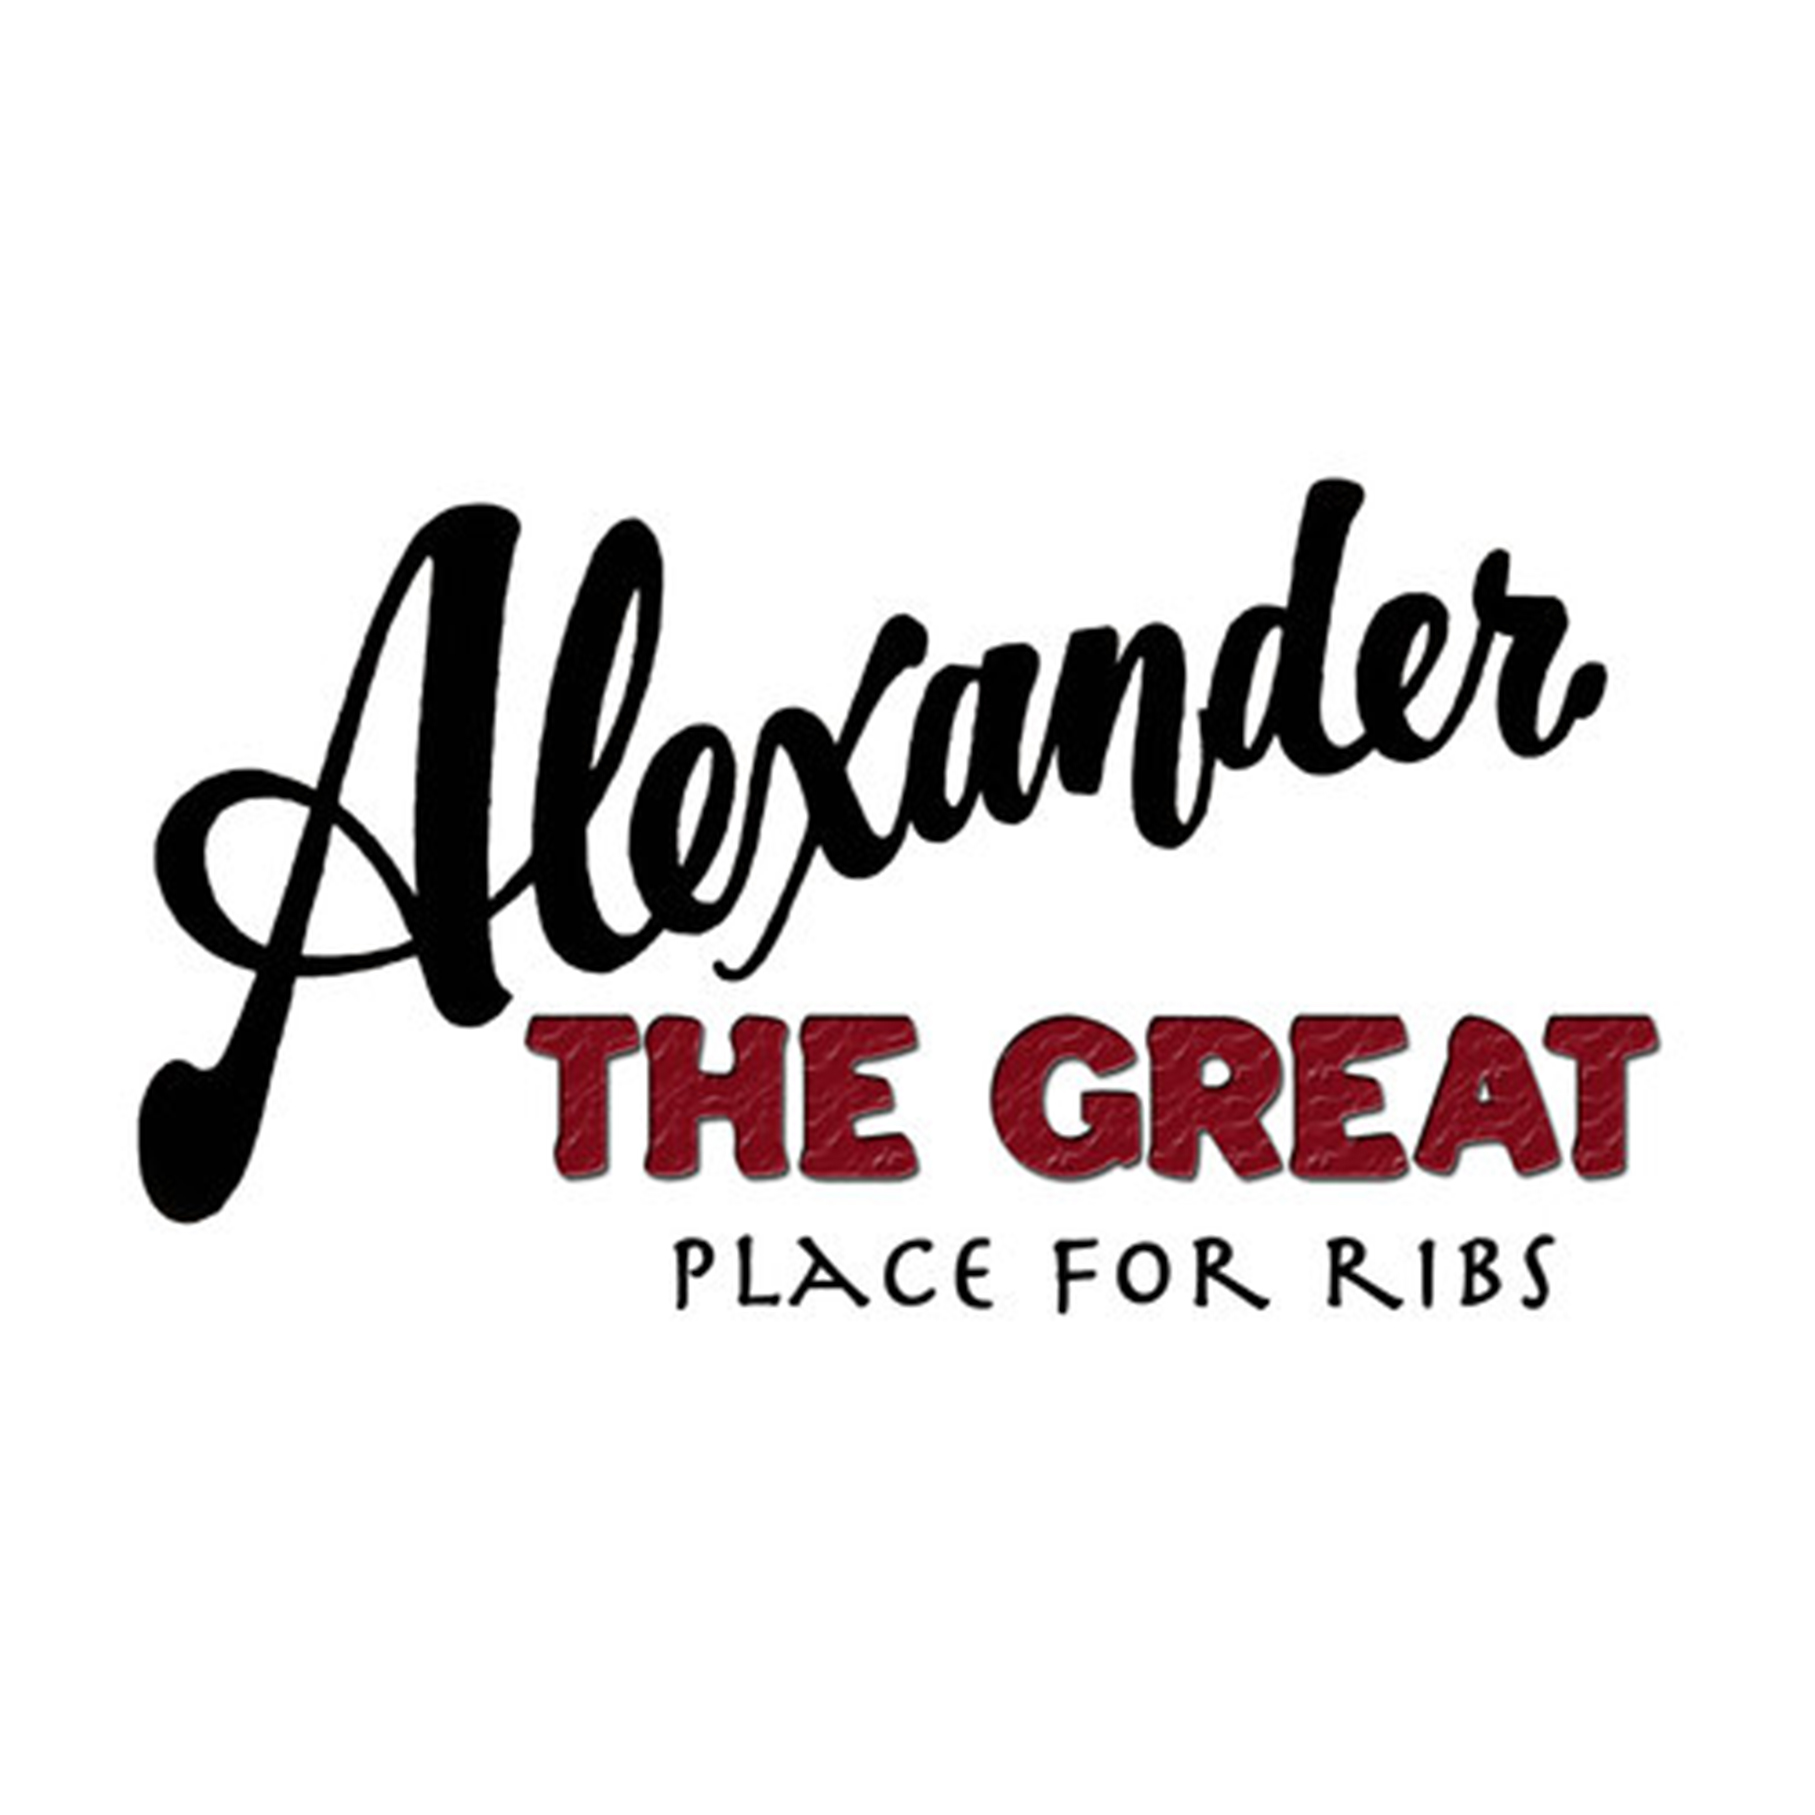 Alexander The Great Place for Ribs • Westland, MI • 734.326.5410